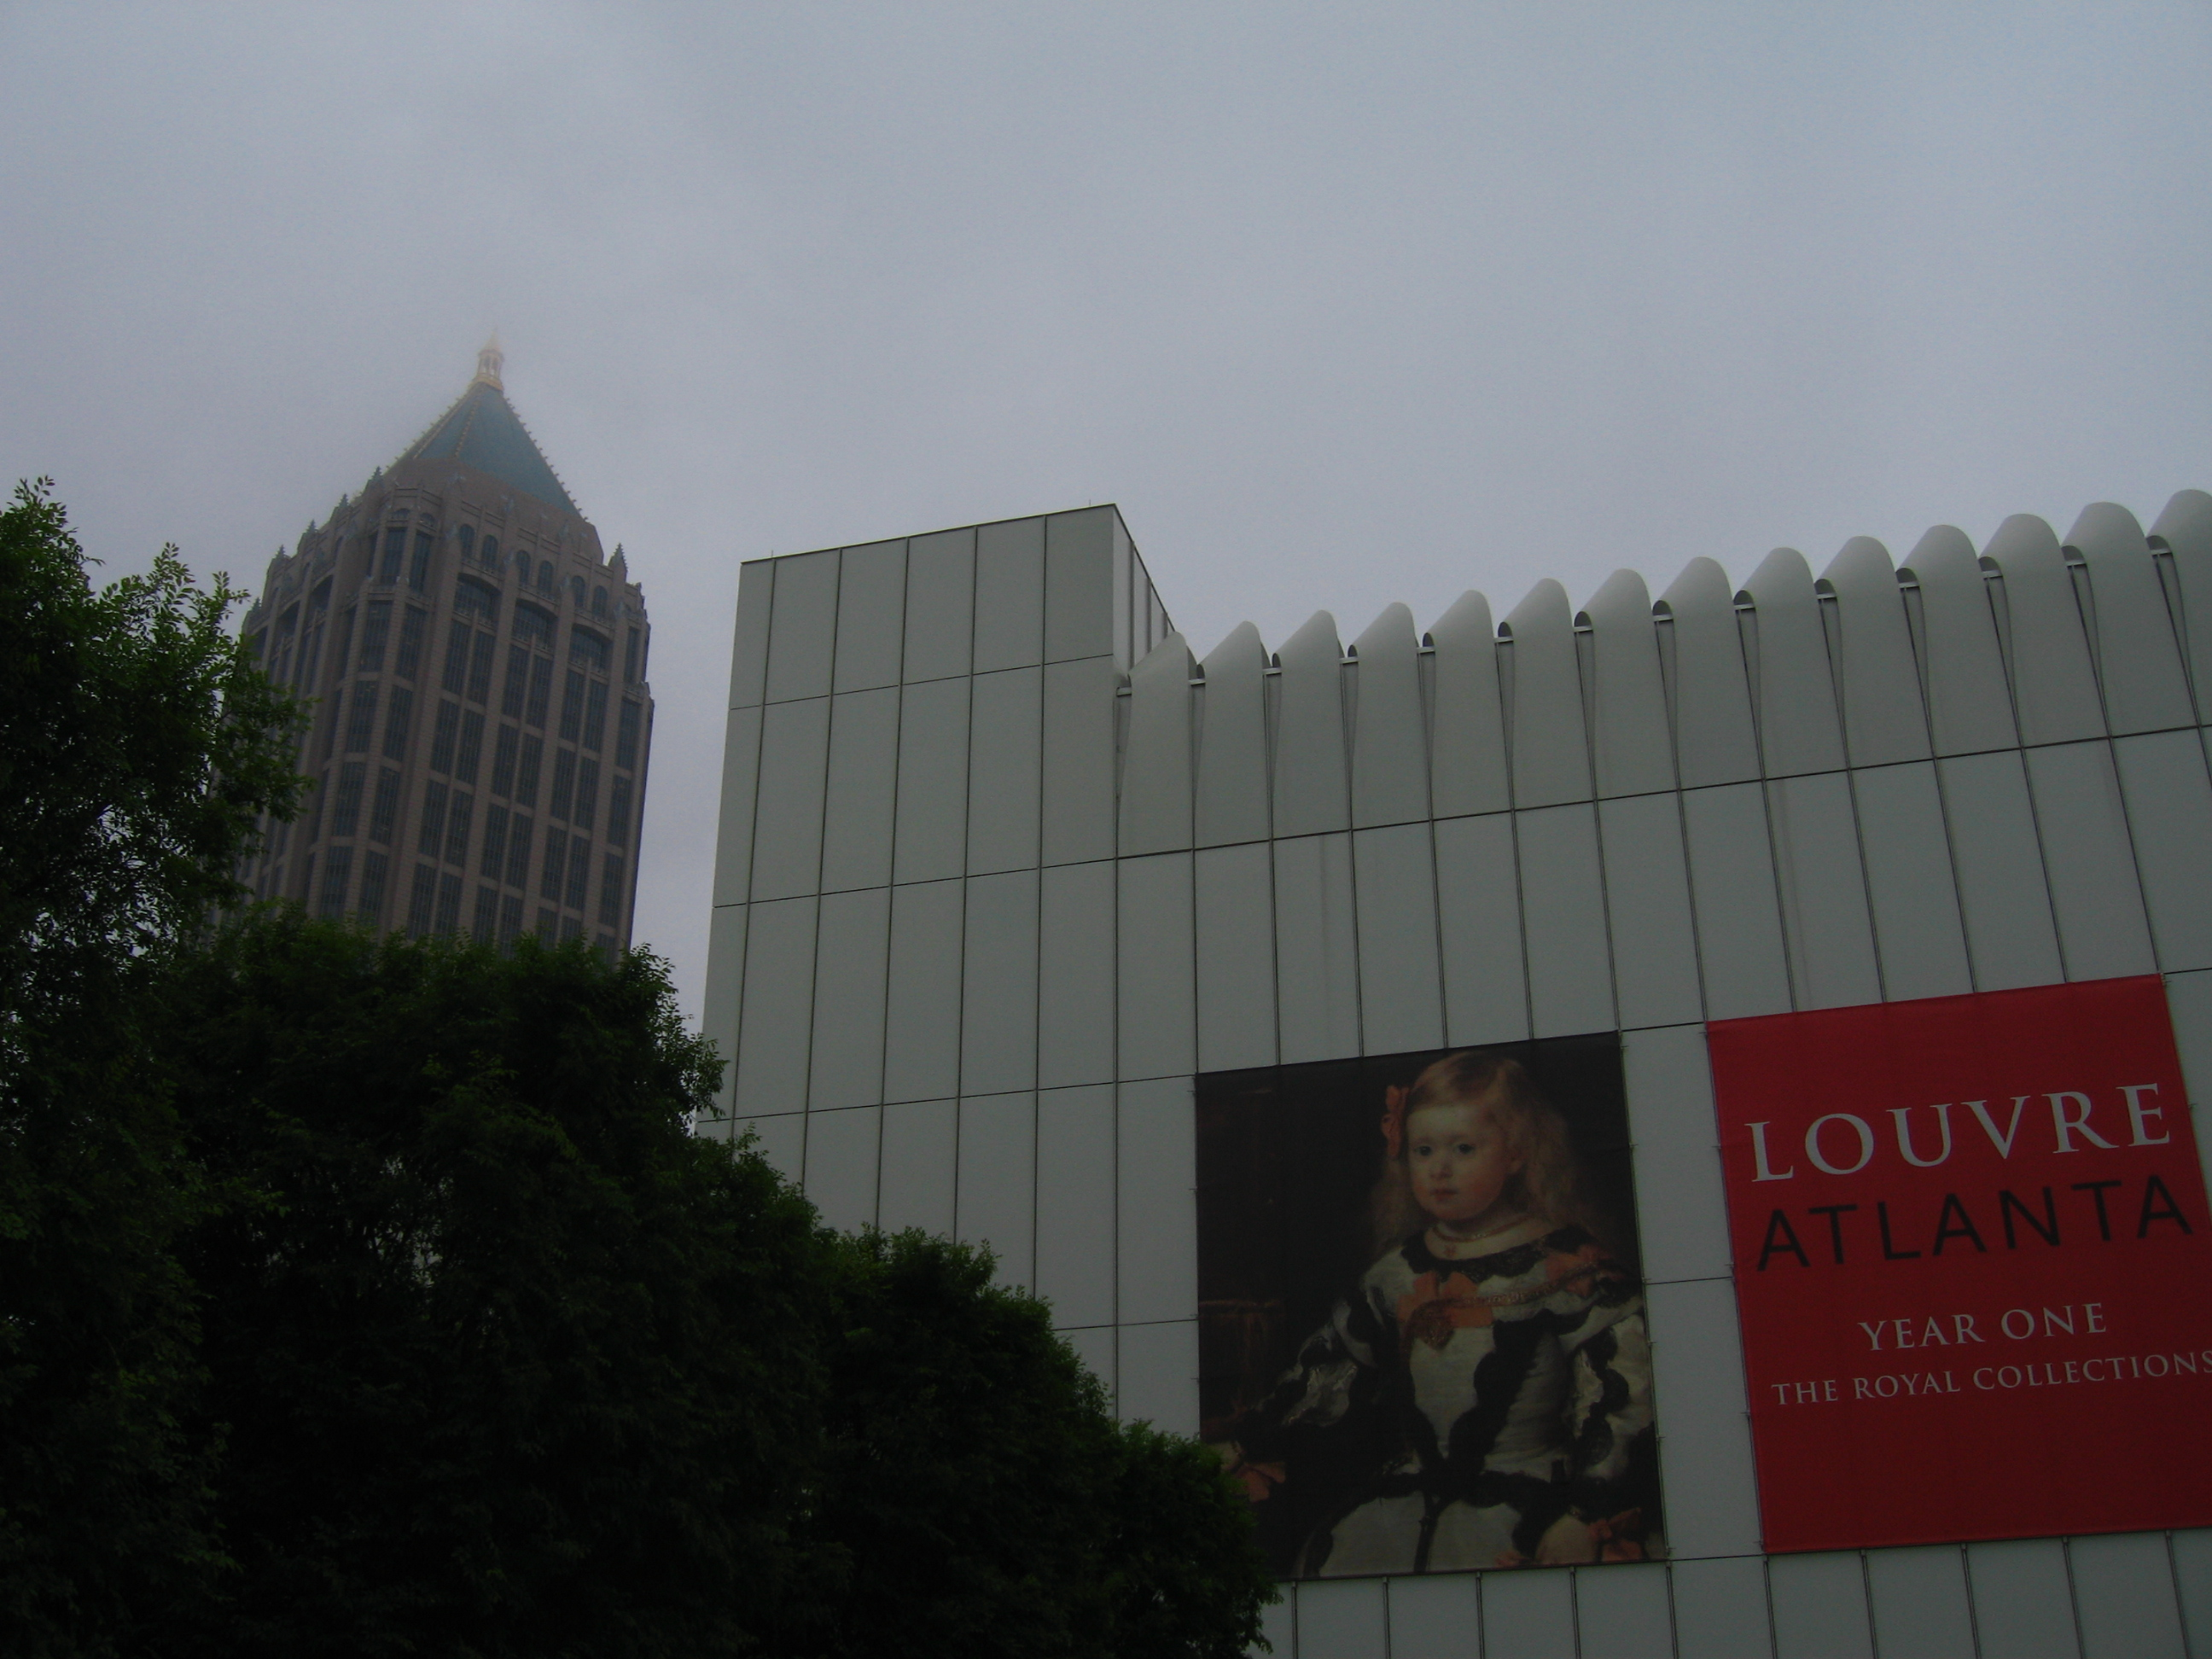 High Museum of Art, Atlanta, Georgia